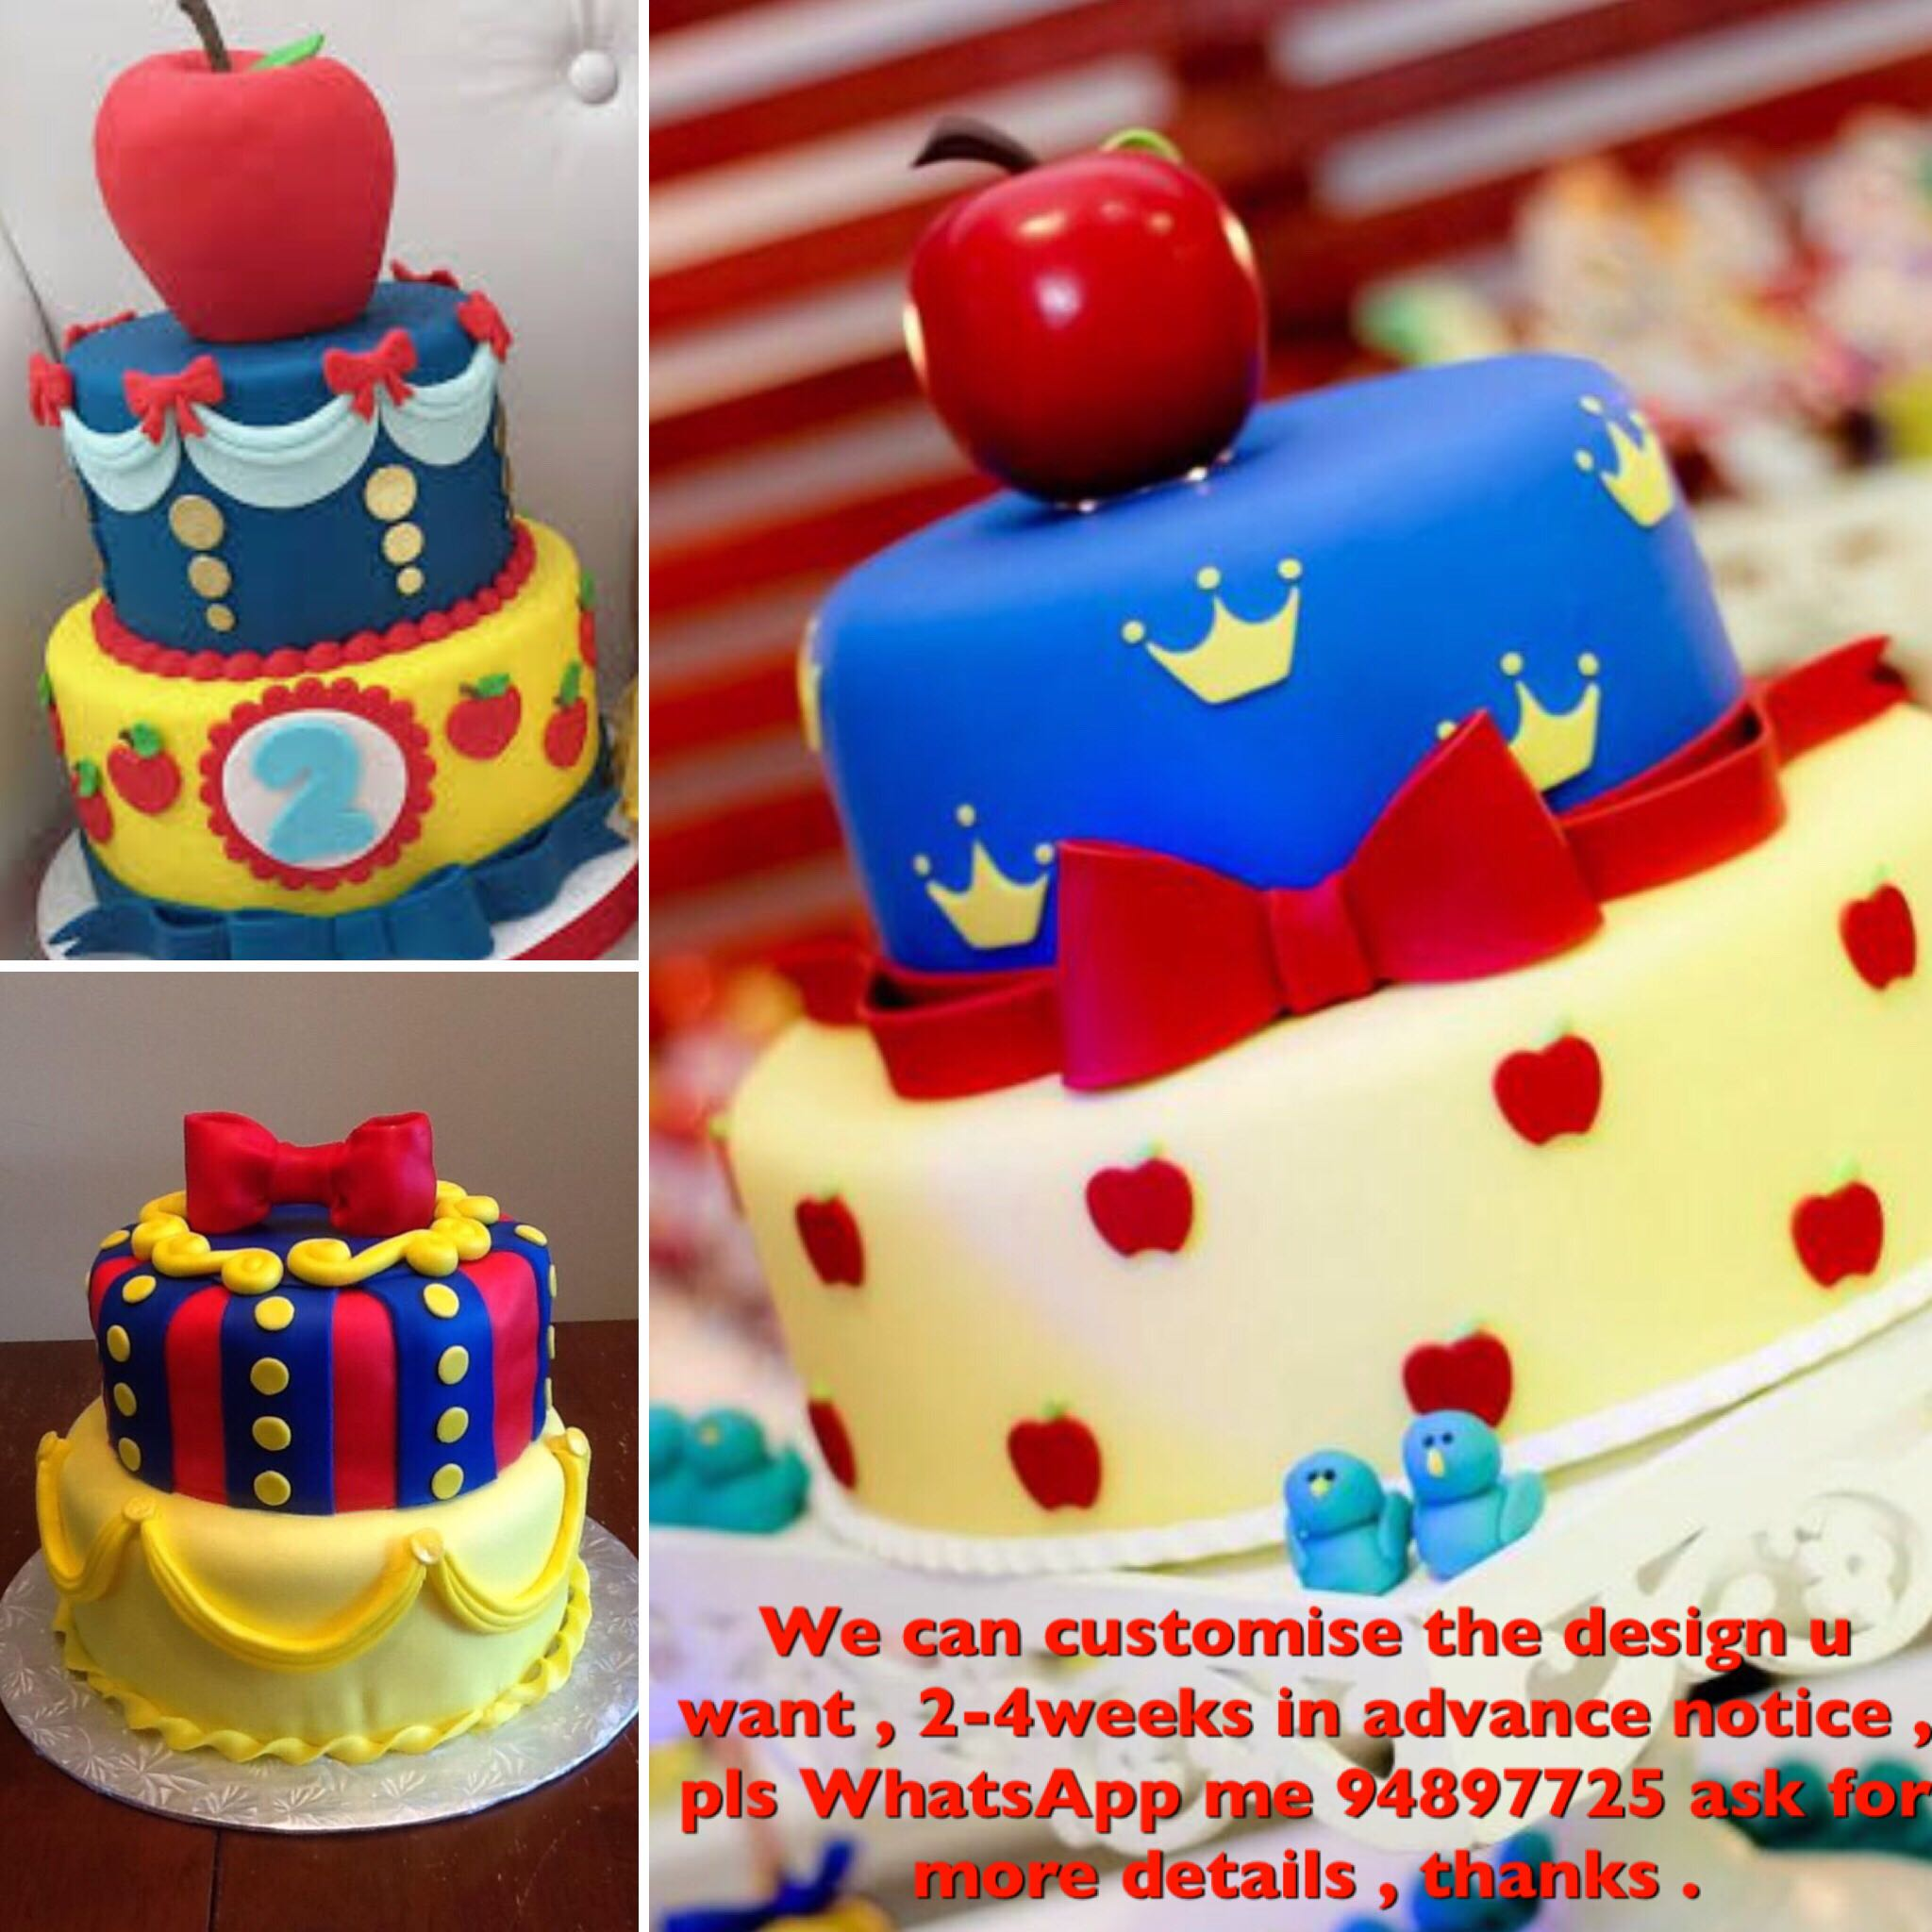 Snow White birthday cake, Babies & Kids, Toys & Walkers on Carousell